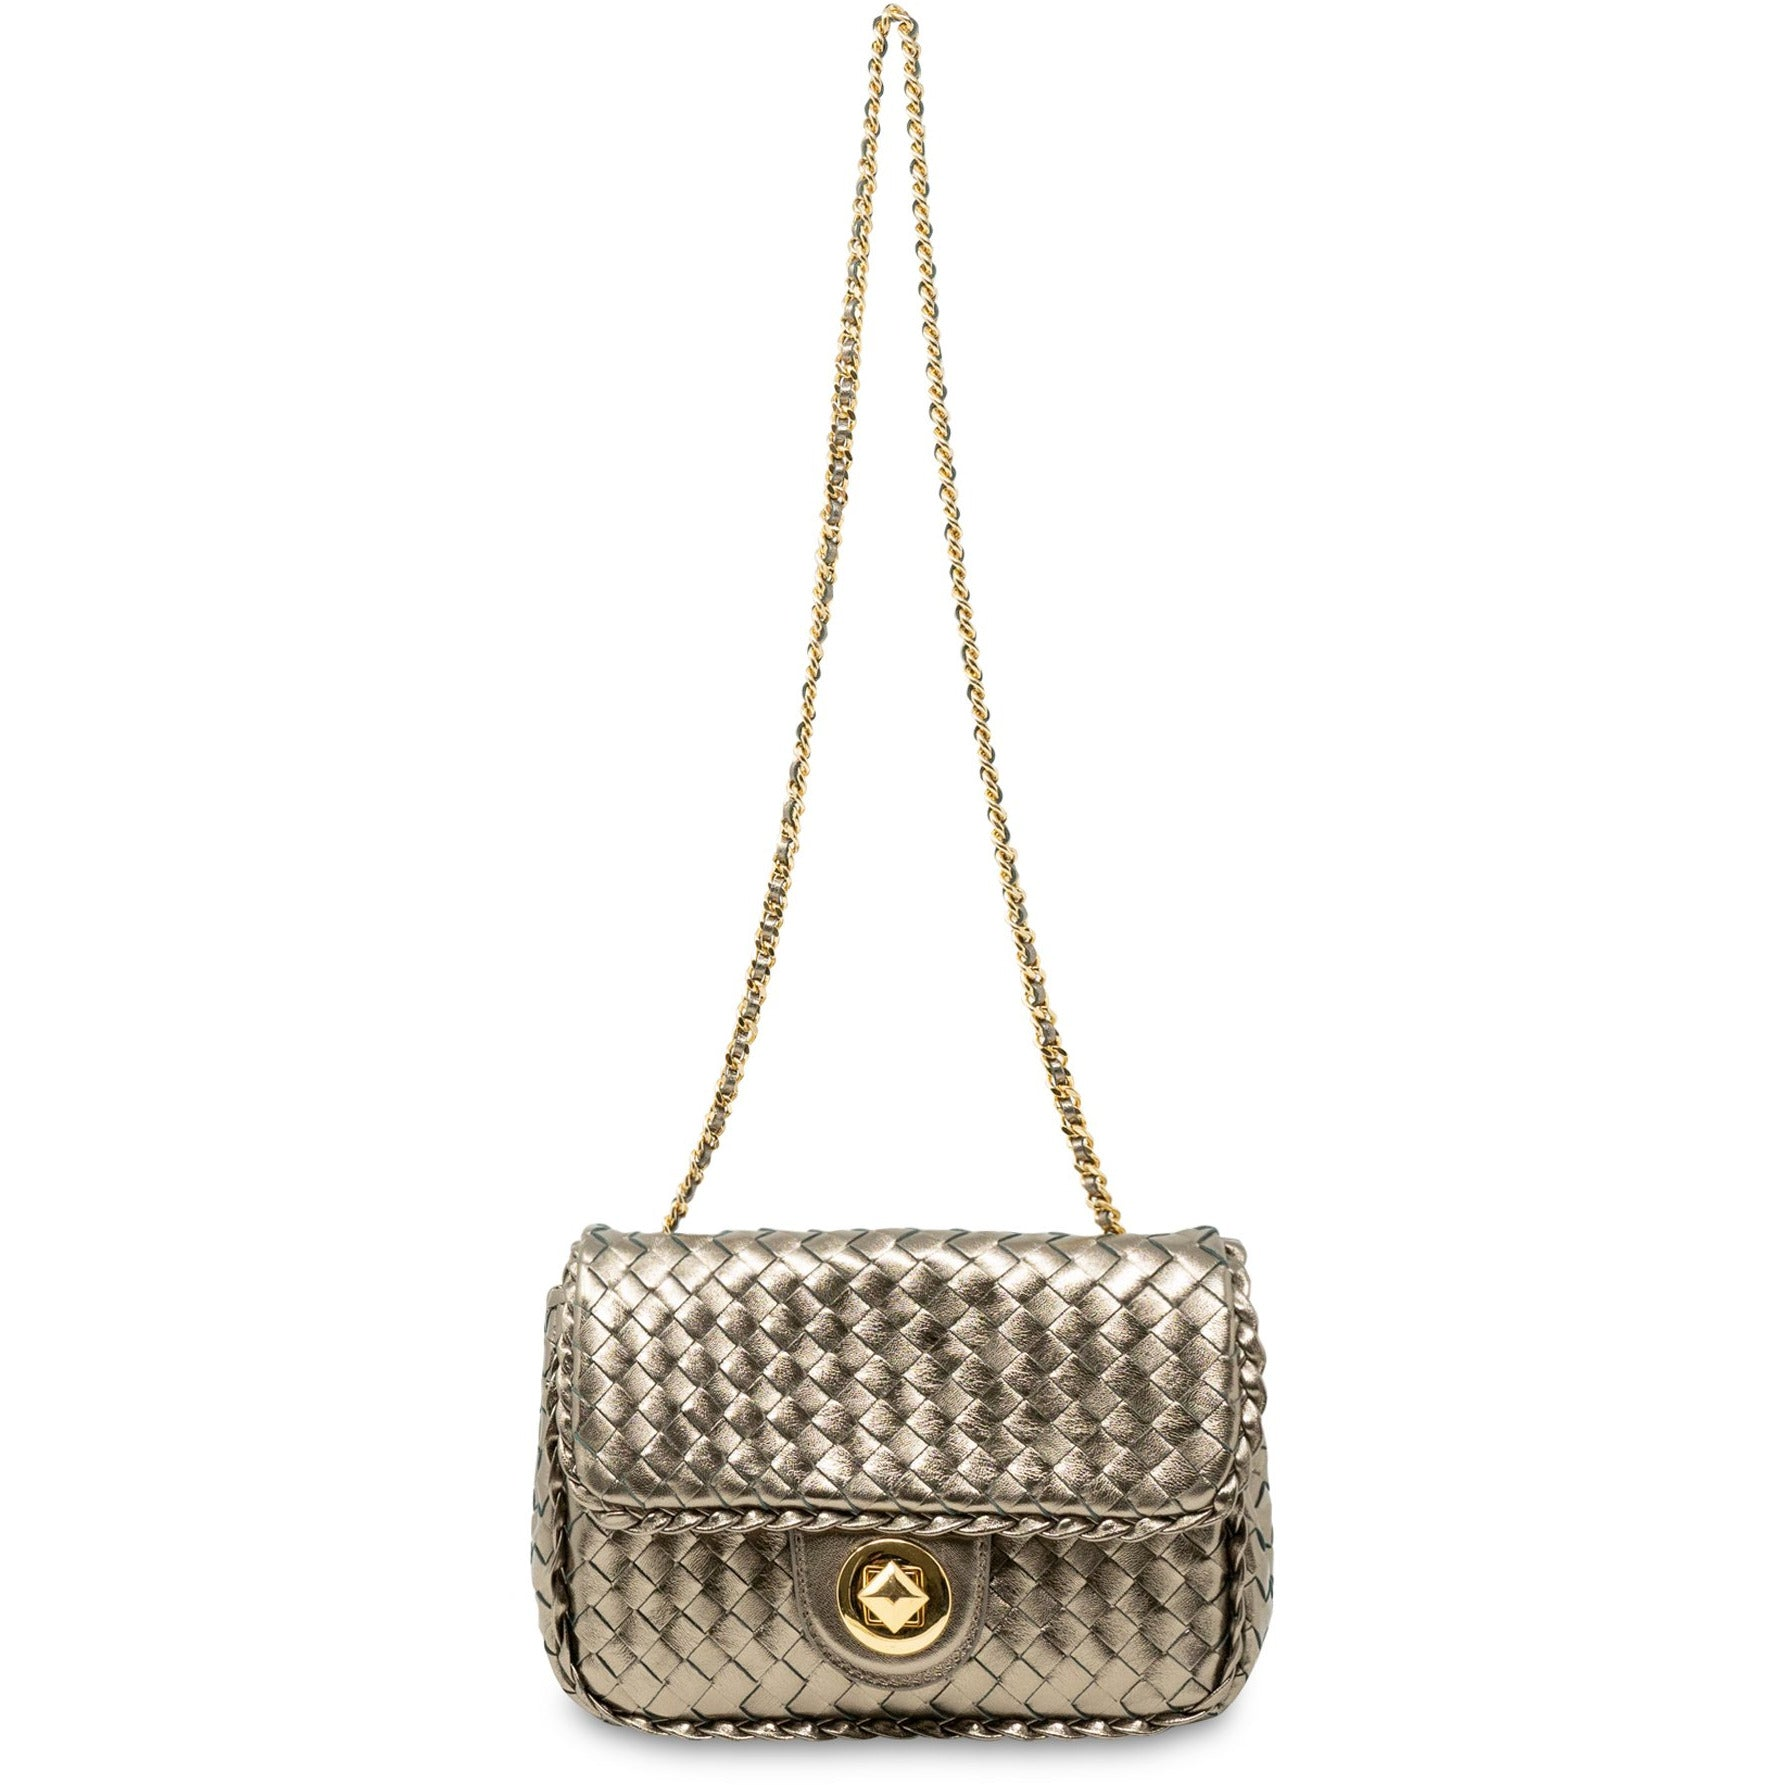 JT189 5304 20 Women Intrecciato Diagonale Leather Clutch Bag - Jennifer Tattanelli